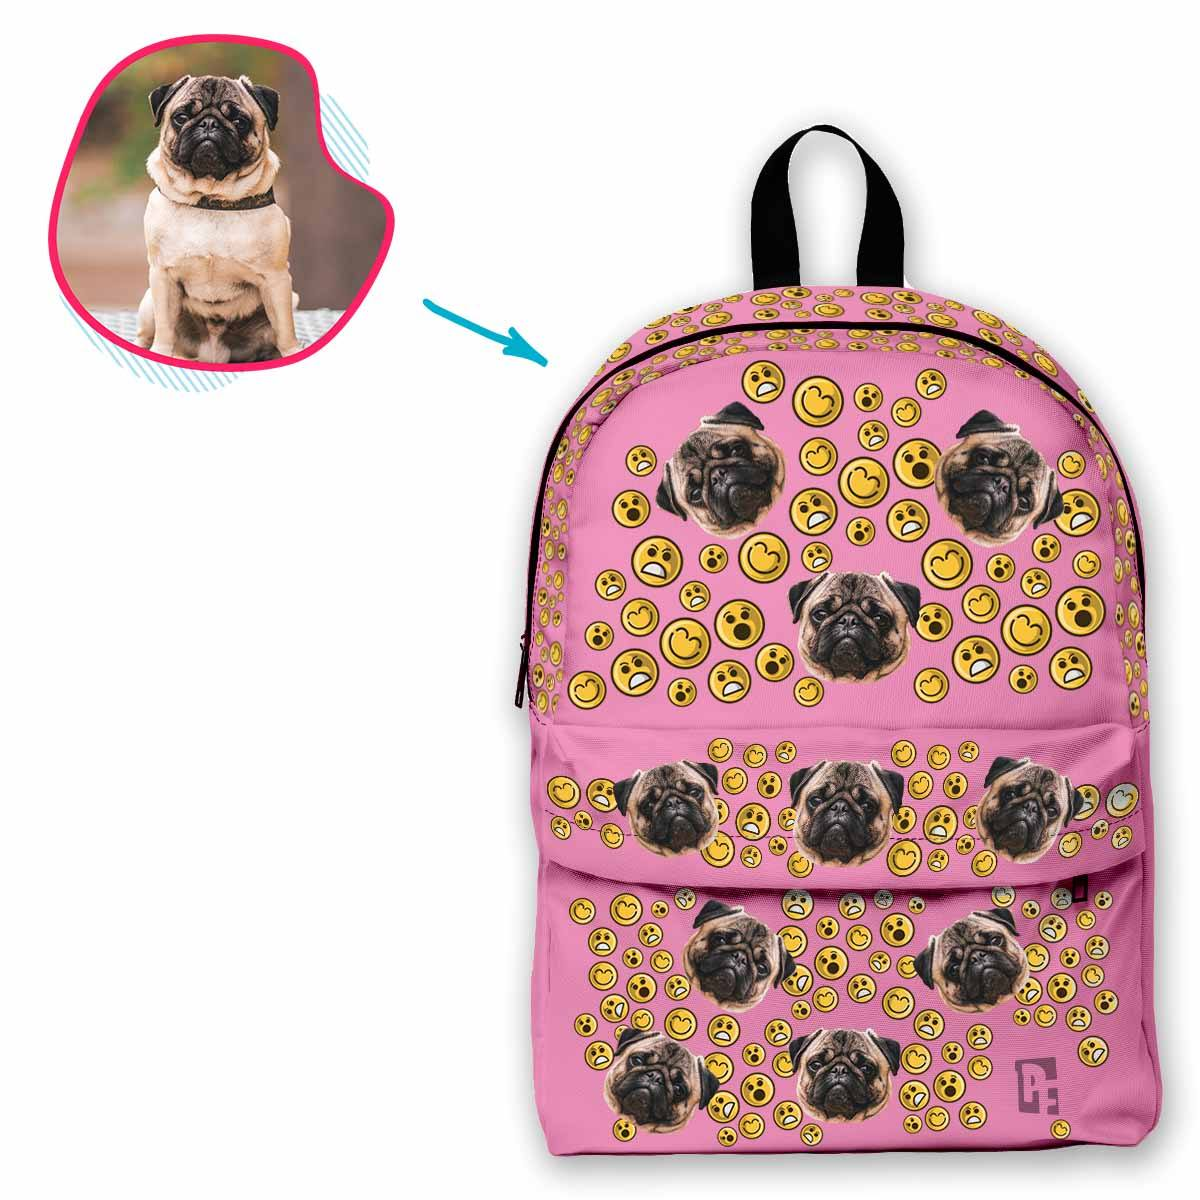 pink Smiles classic backpack personalized with photo of face printed on it